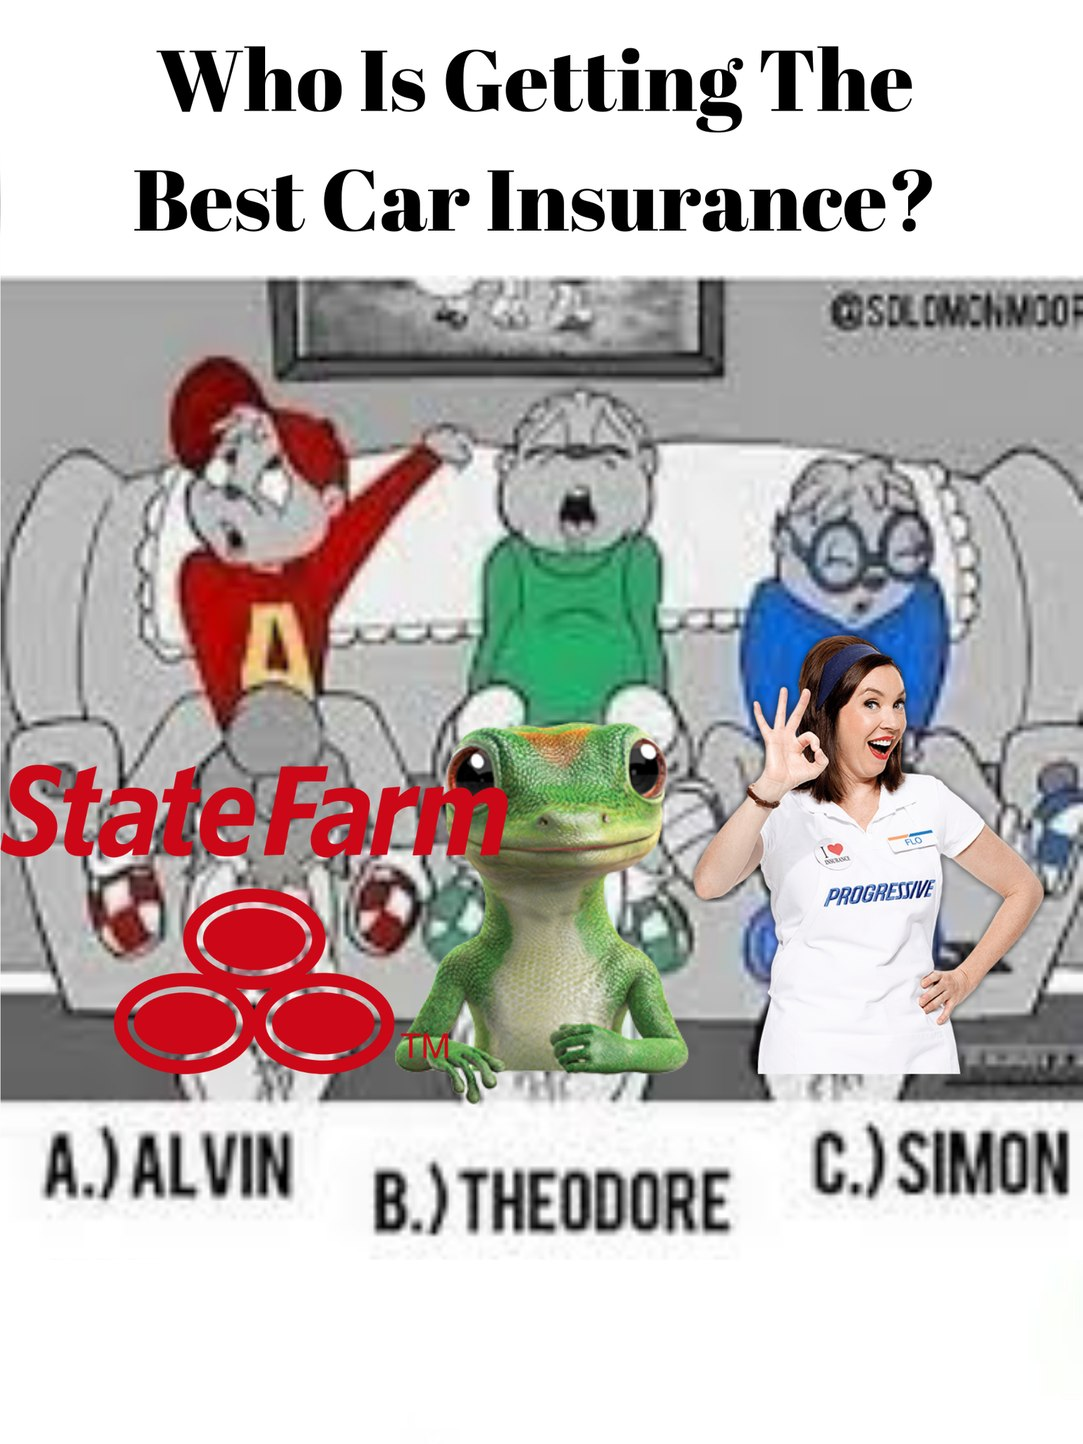 Who Is Getting The Best Car Insurance - meme